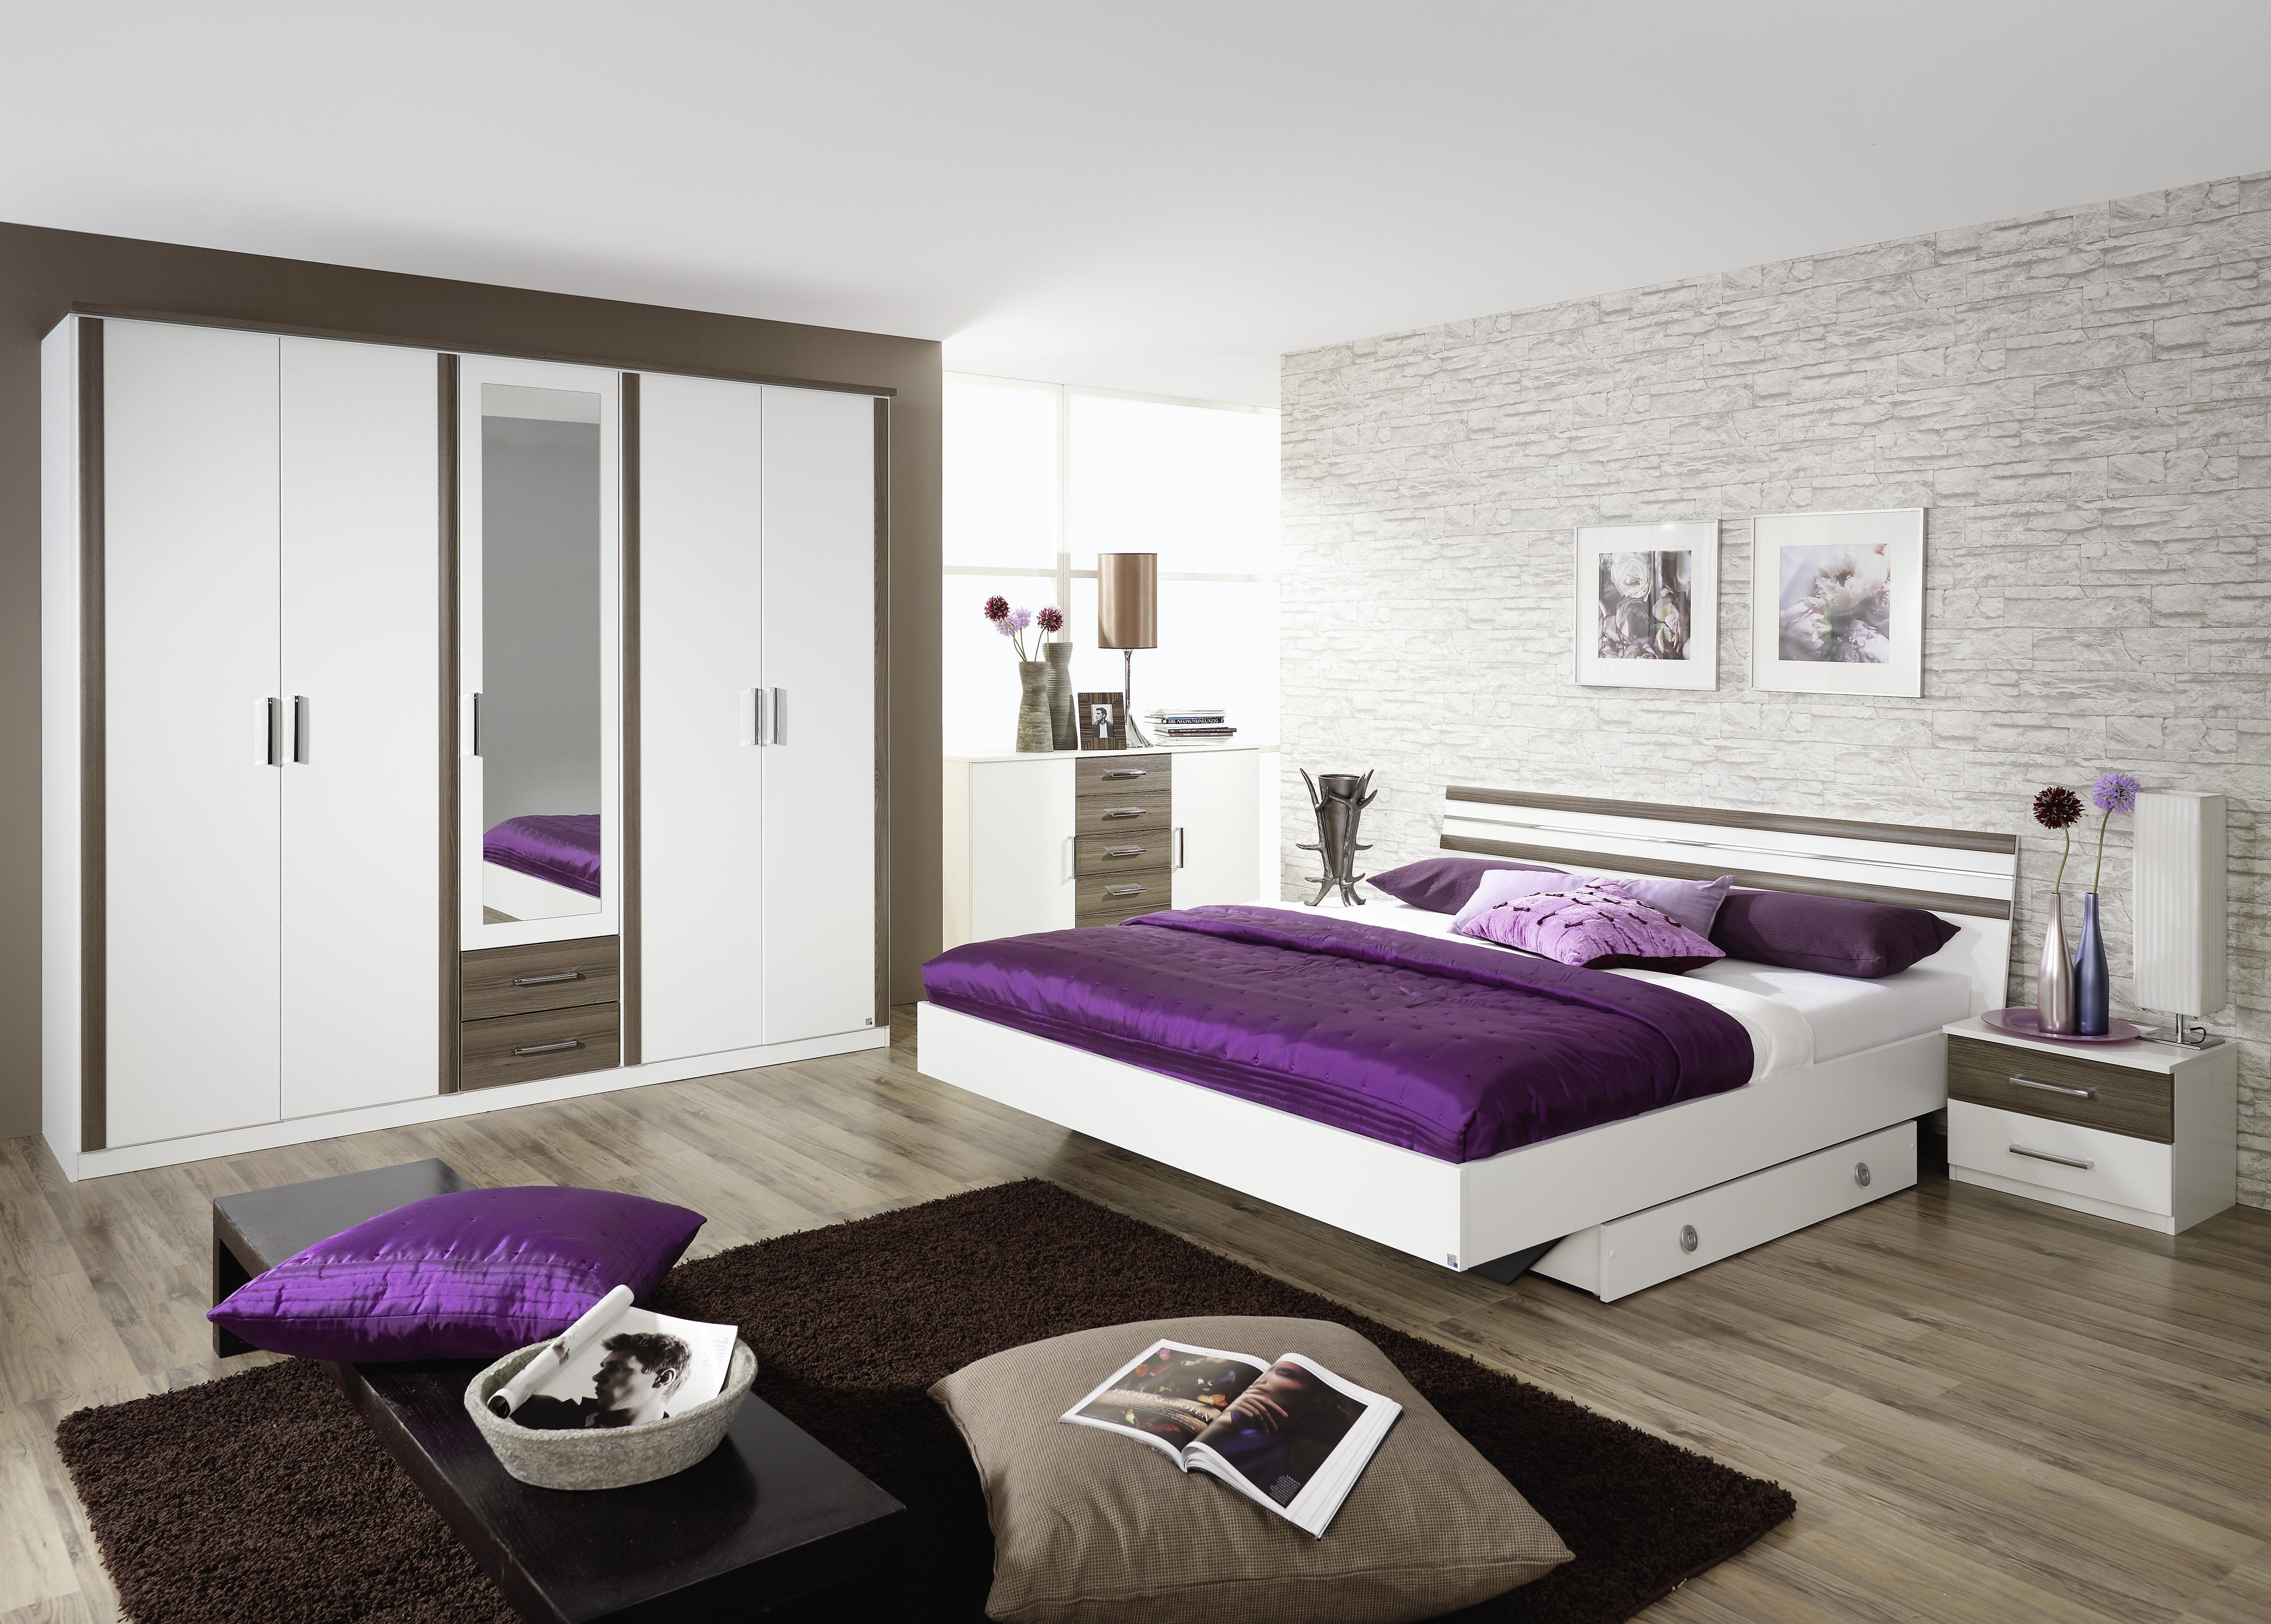 Am nagement chambre contemporaine for Deco contemporaine chambre adulte